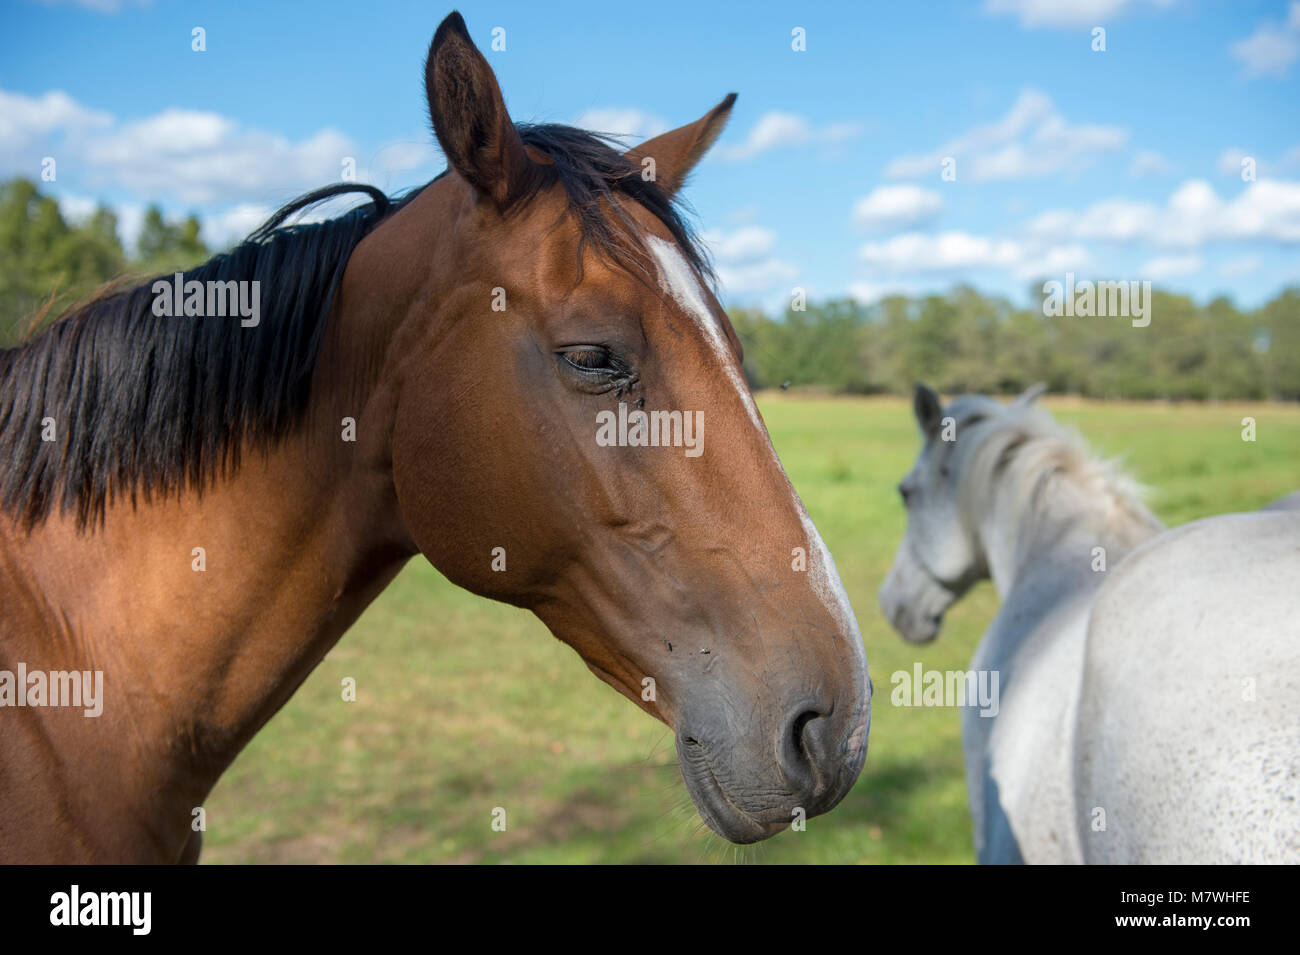 Two horses in a field one brown and one white, blue sky and Forrest in background - Stock Image